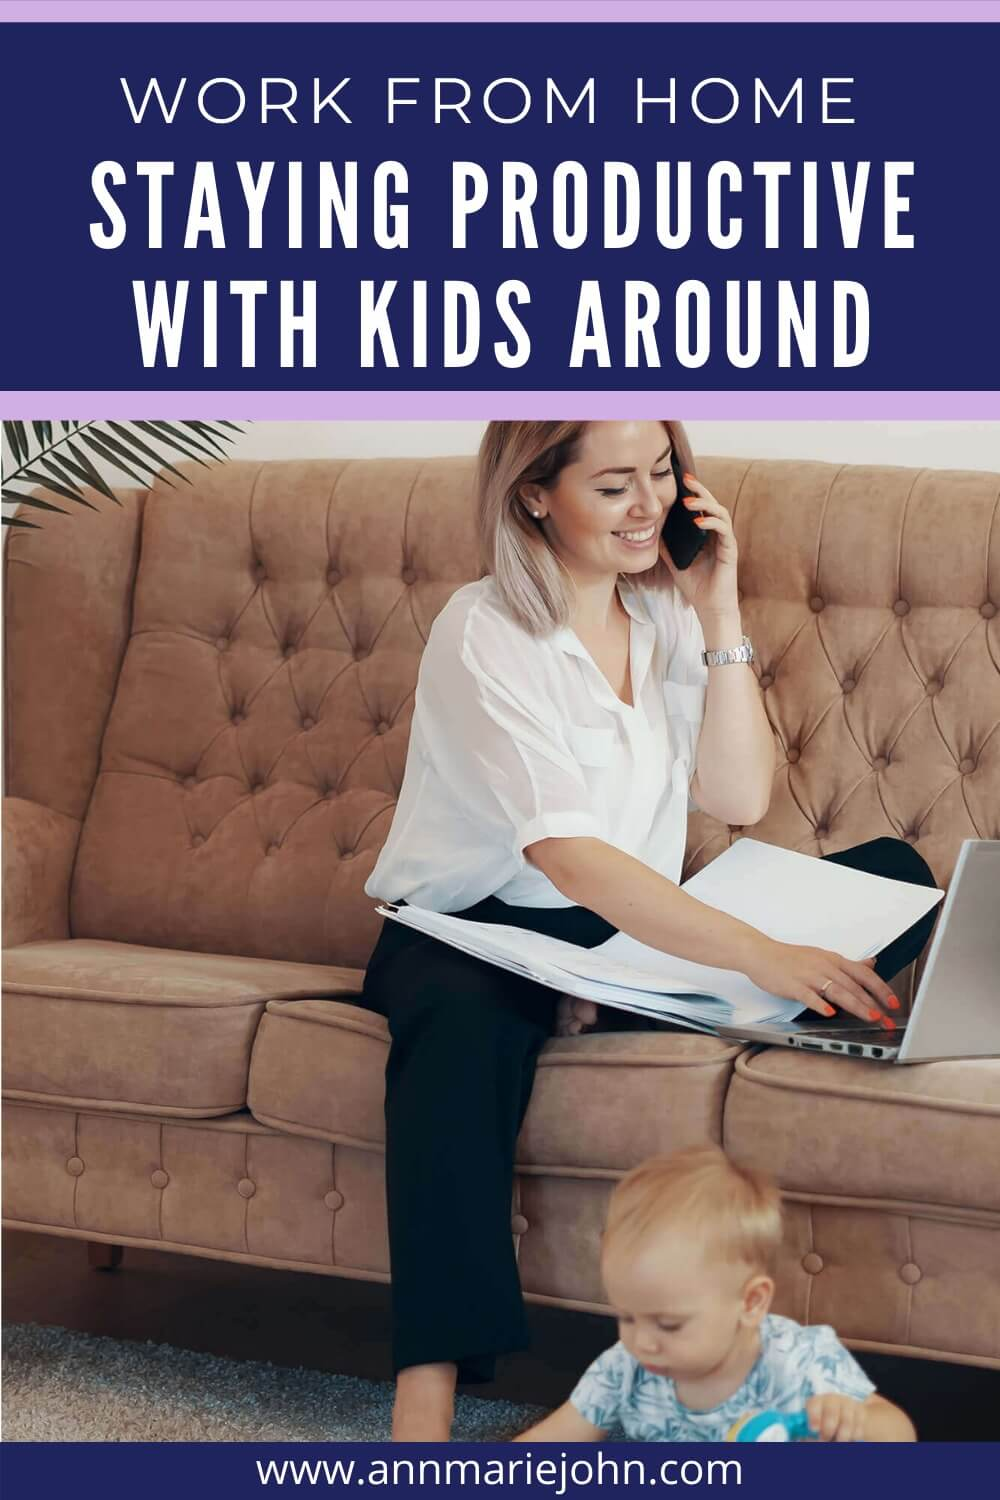 Work From Home: Staying Productive With Kids Around